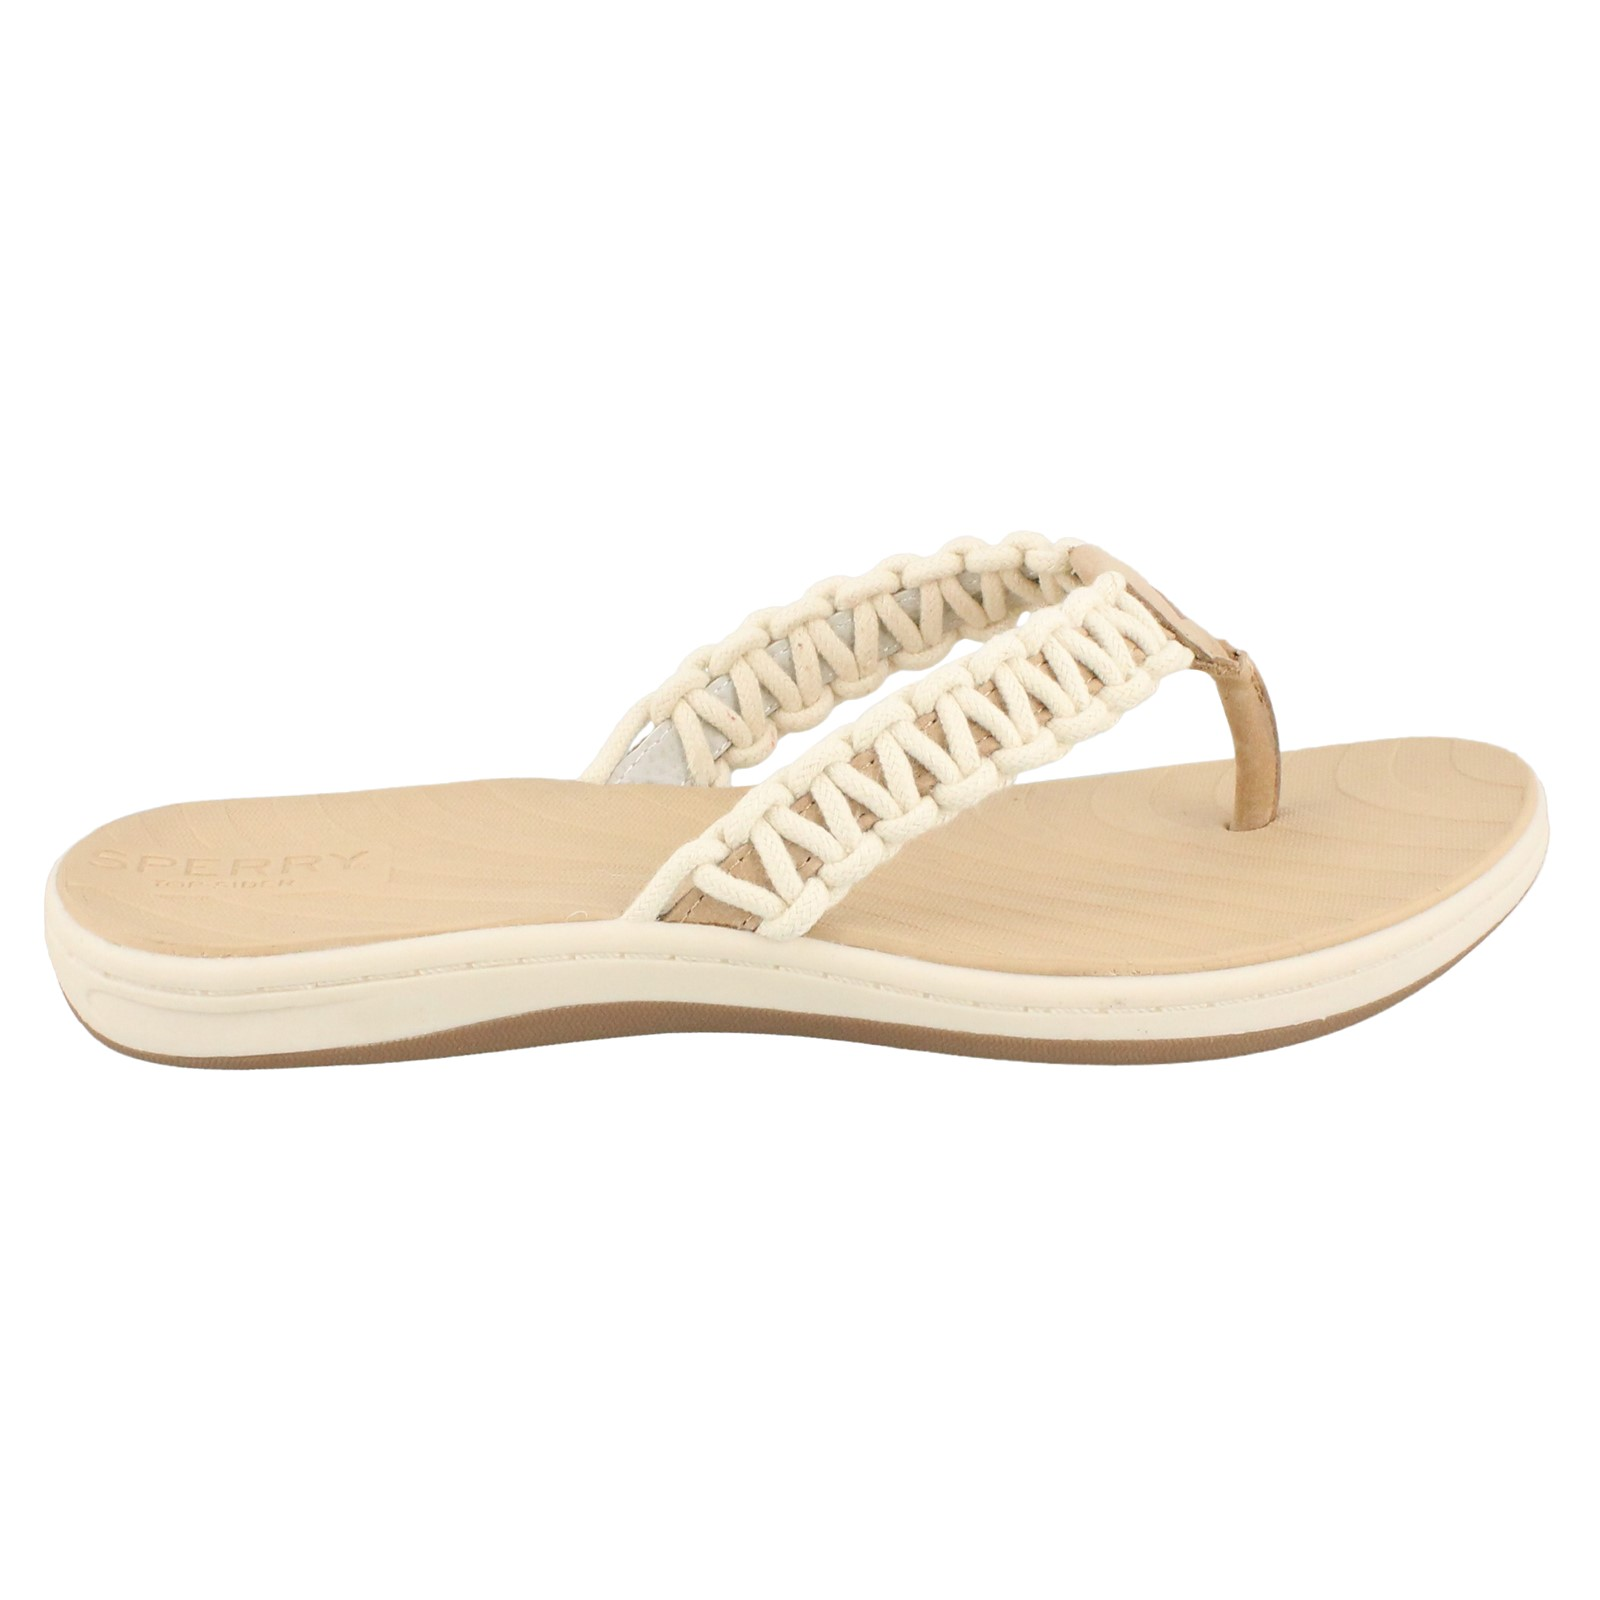 Women's Sperry, Seabrook Current Thong Sandal